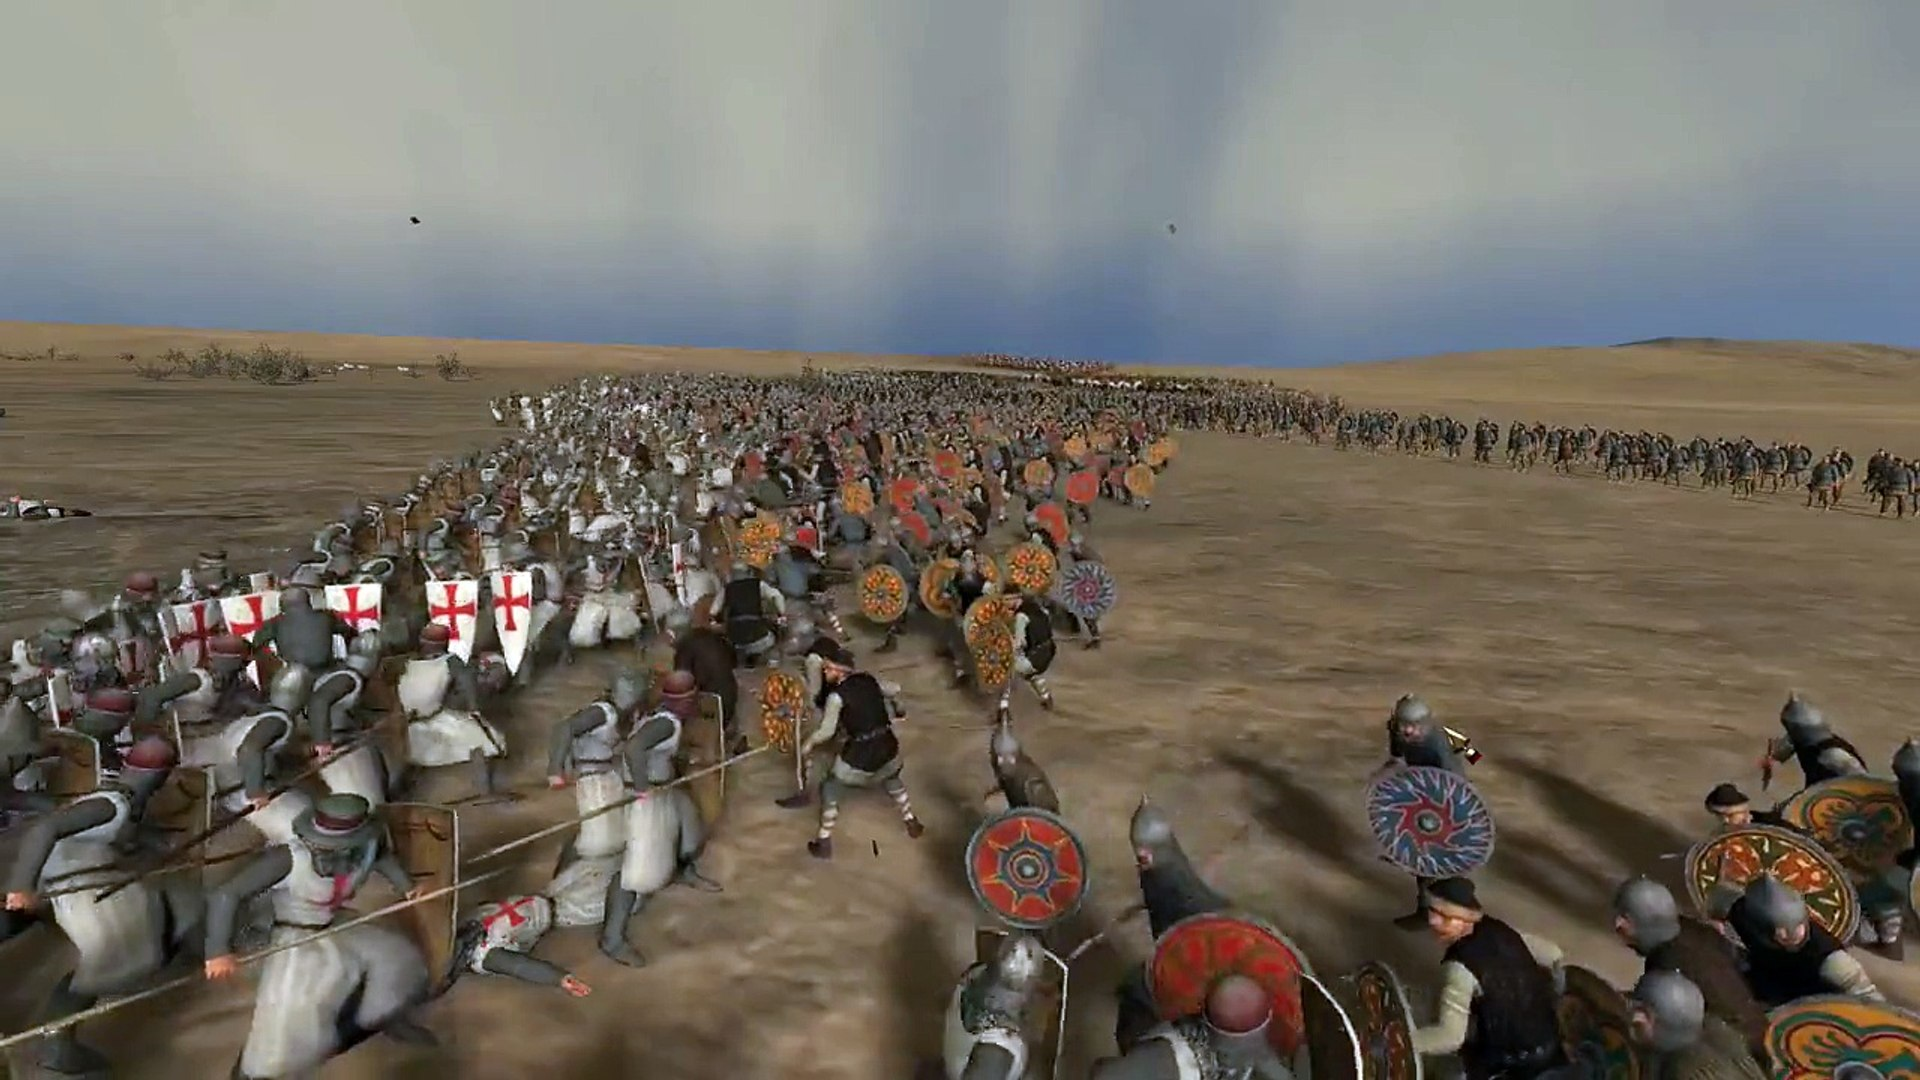 Crusader War - Video Game - War Game - Strategy Game -  Action Game - Shooting Game